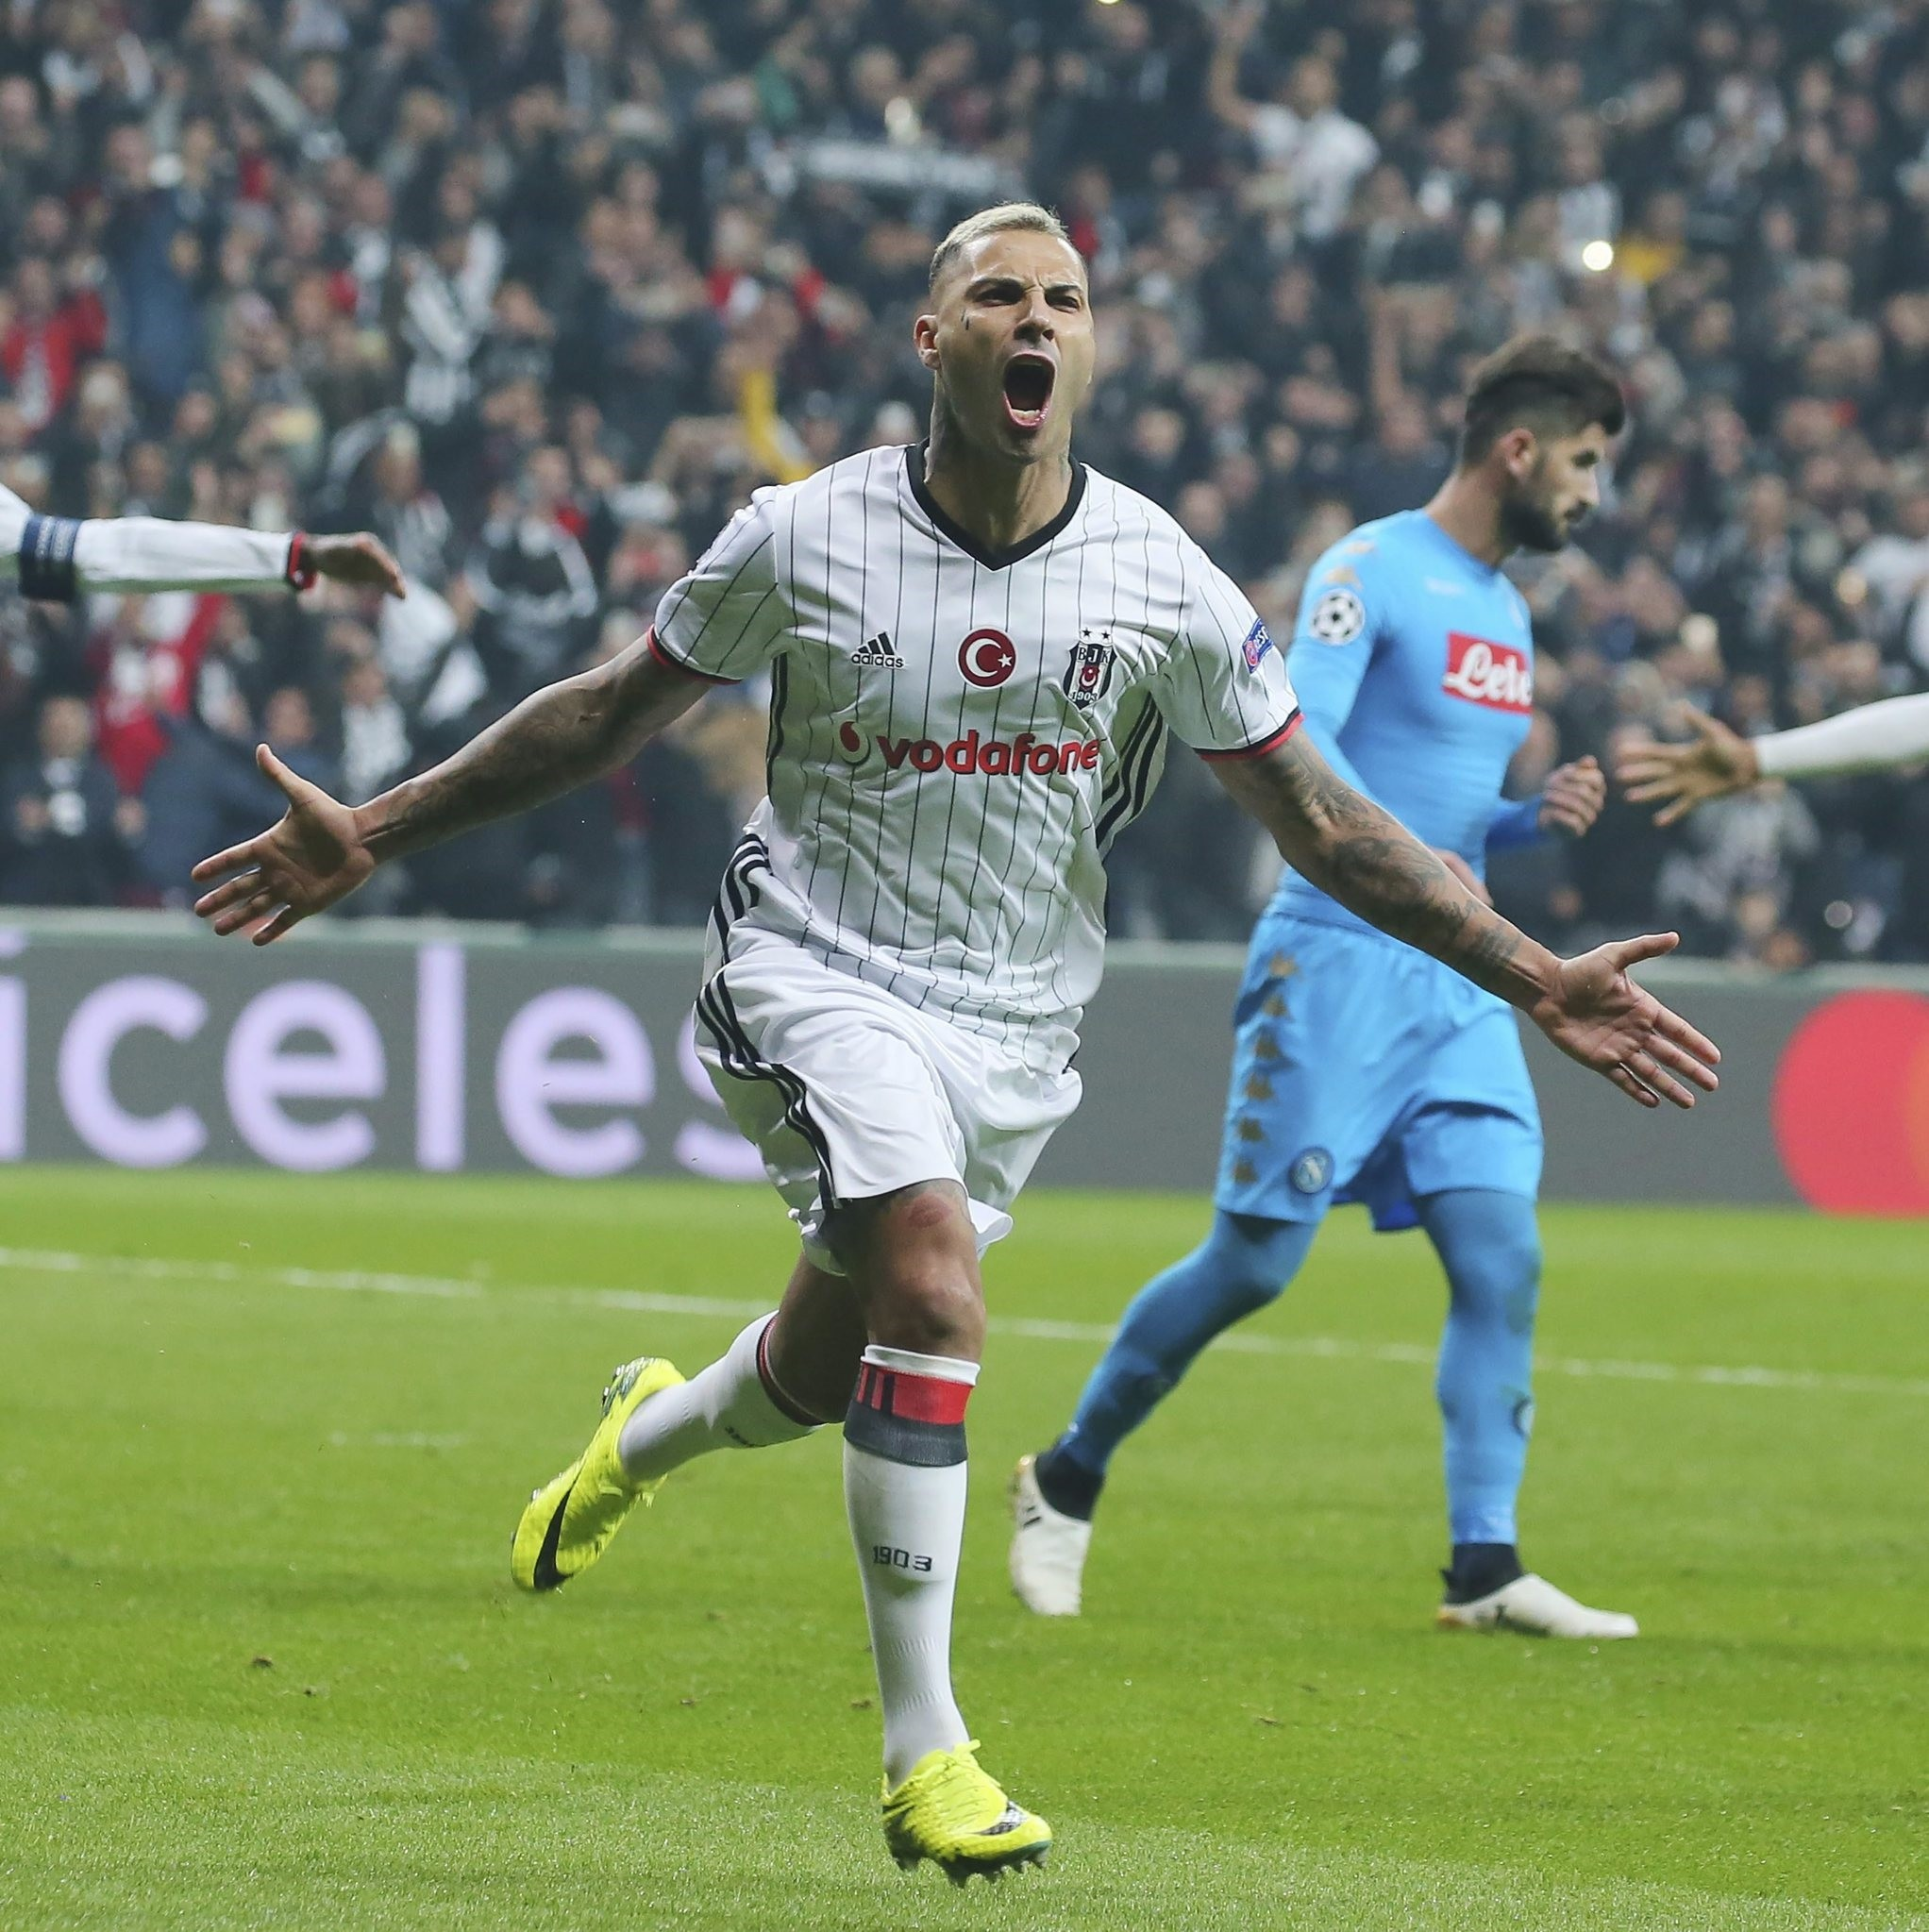 Beu015fiktau015f's Ricardo Quaresma runs to celebrate after scoring against Napoli during their Champions League group B soccer match, in Istanbul, Tuesday, Nov. 1, 2016. (AP Photo)